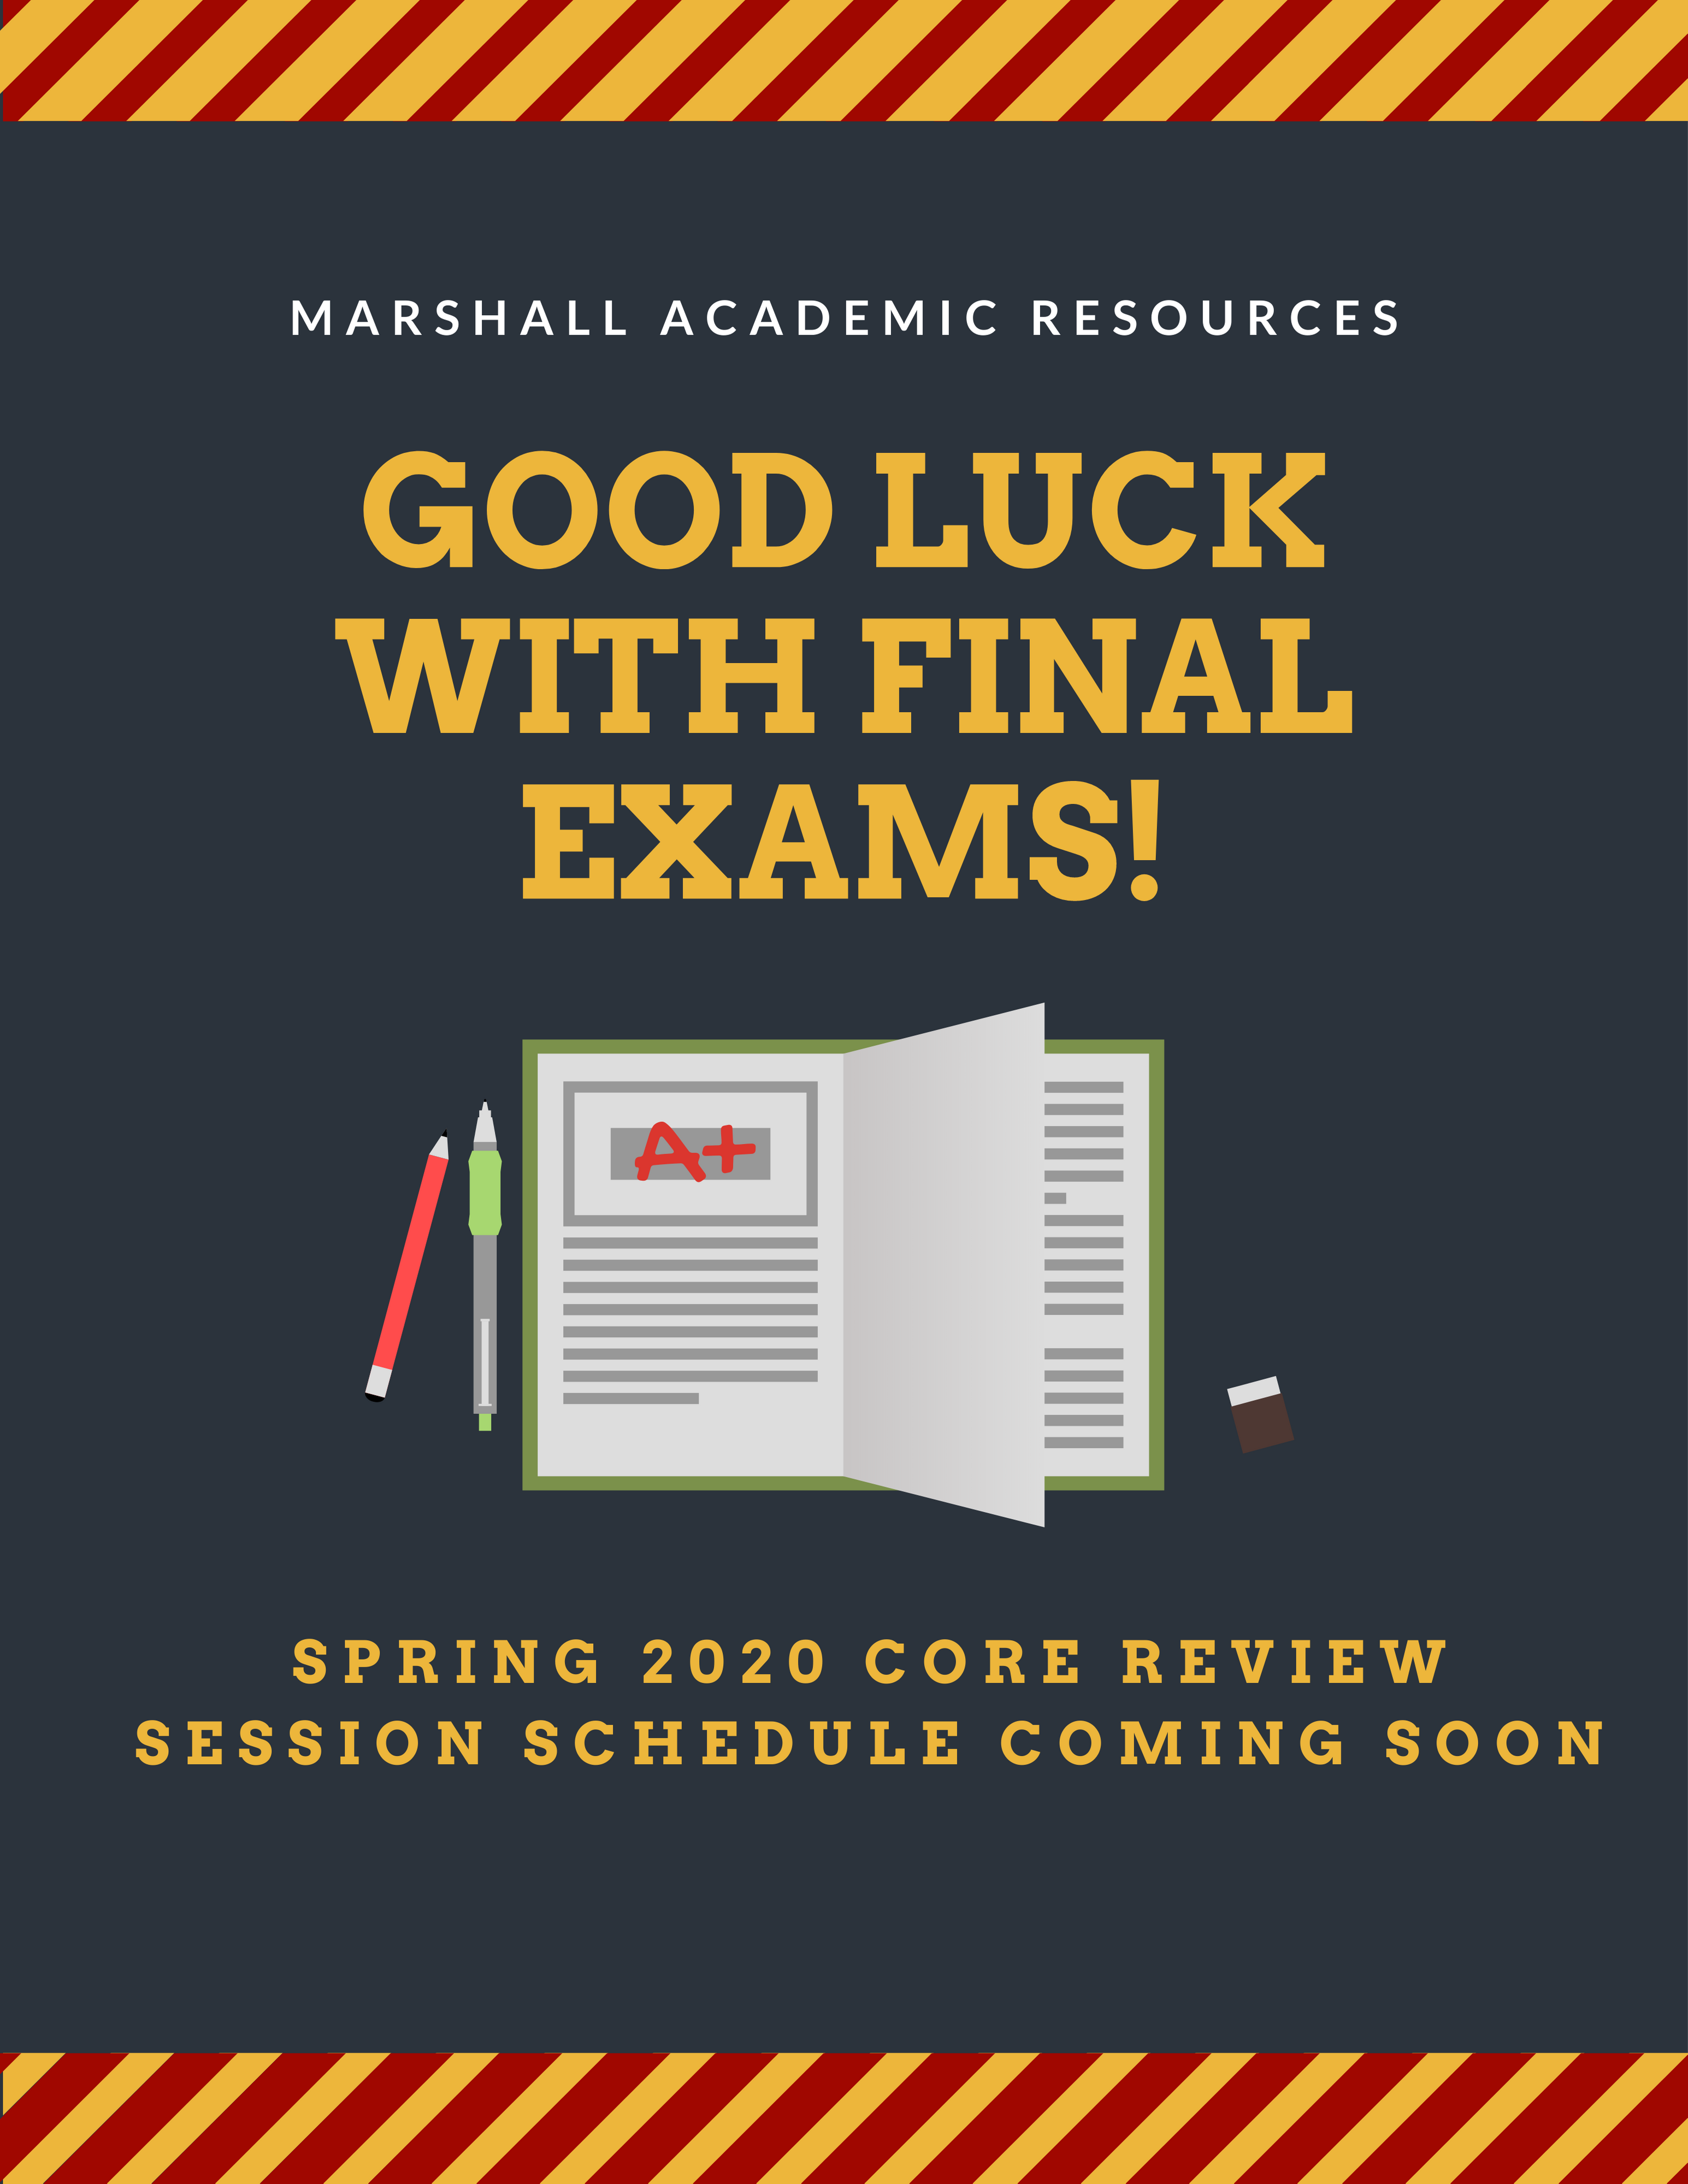 Usc Schedule Of Classes Fall 2020.Core Review Sessions Schedule Usc Marshall